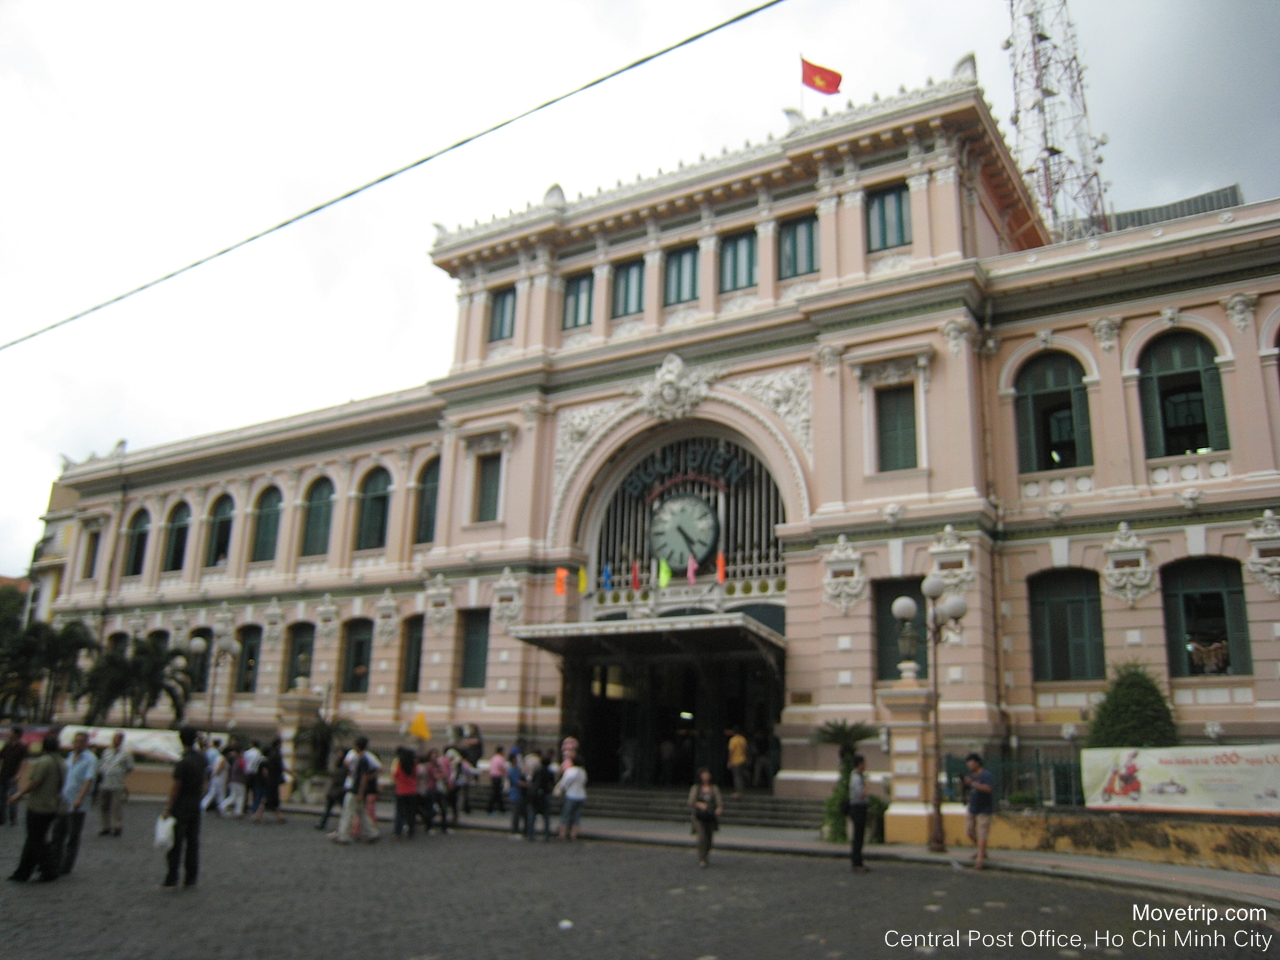 Central-Post-Office-Ho-Chi-Minh-City-Vietnam-1